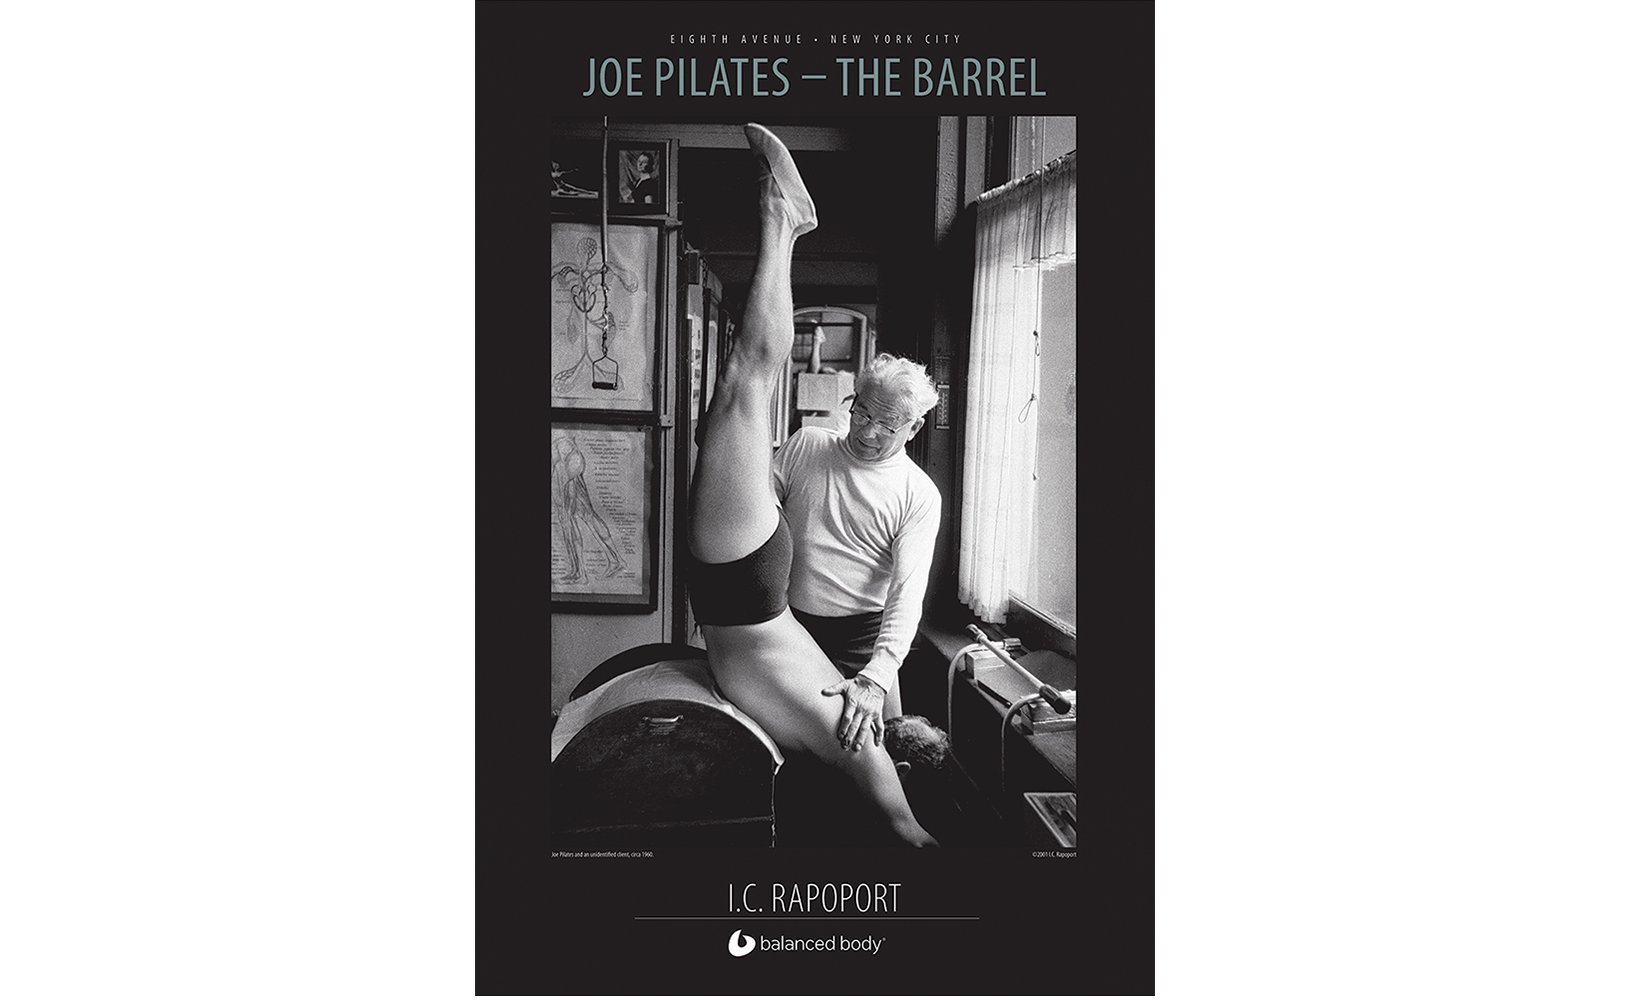 Rapaport 'The Barrel' poster product photo